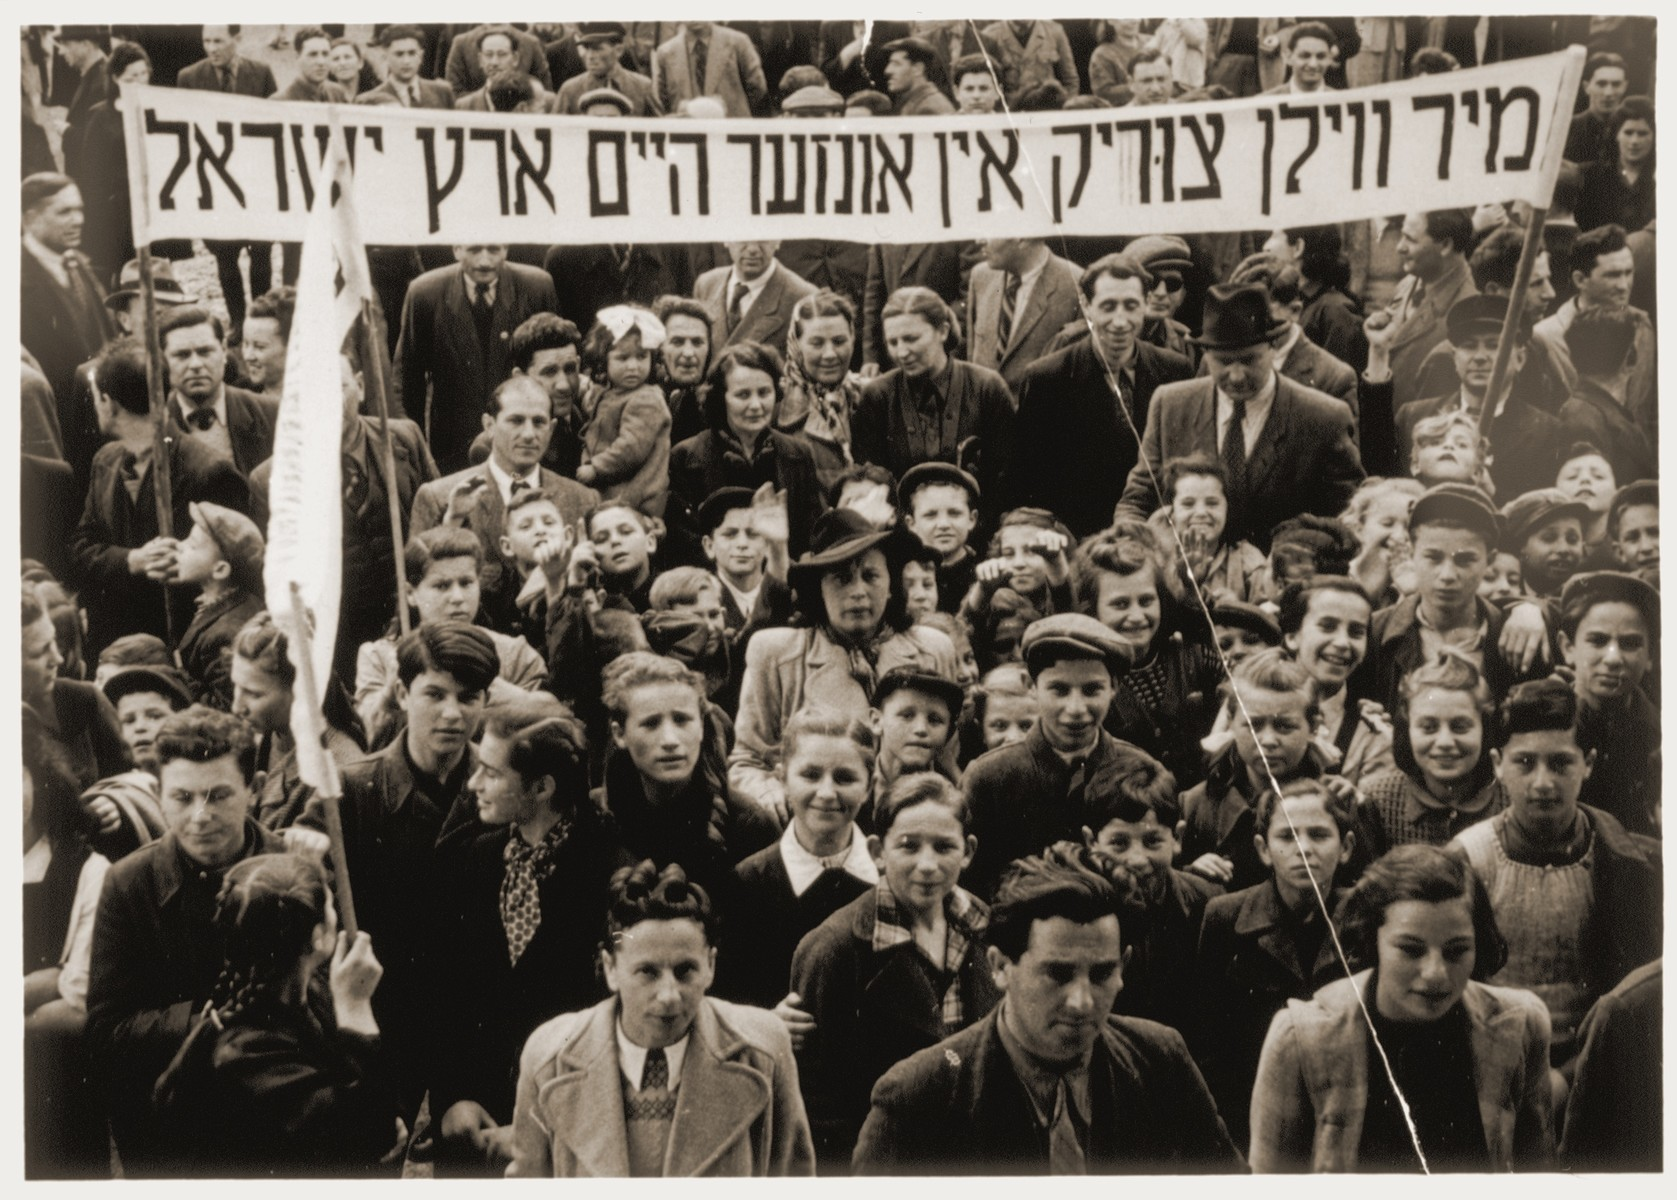 """A large crowd of Jewish DPs participate in a demonstration protesting British immigration policy to Israel at the Neu Freimann displaced persons camp.  They stand beneath a Yiddish banner which proclaims, """"We want to go back to our home in the Land of Israel."""""""